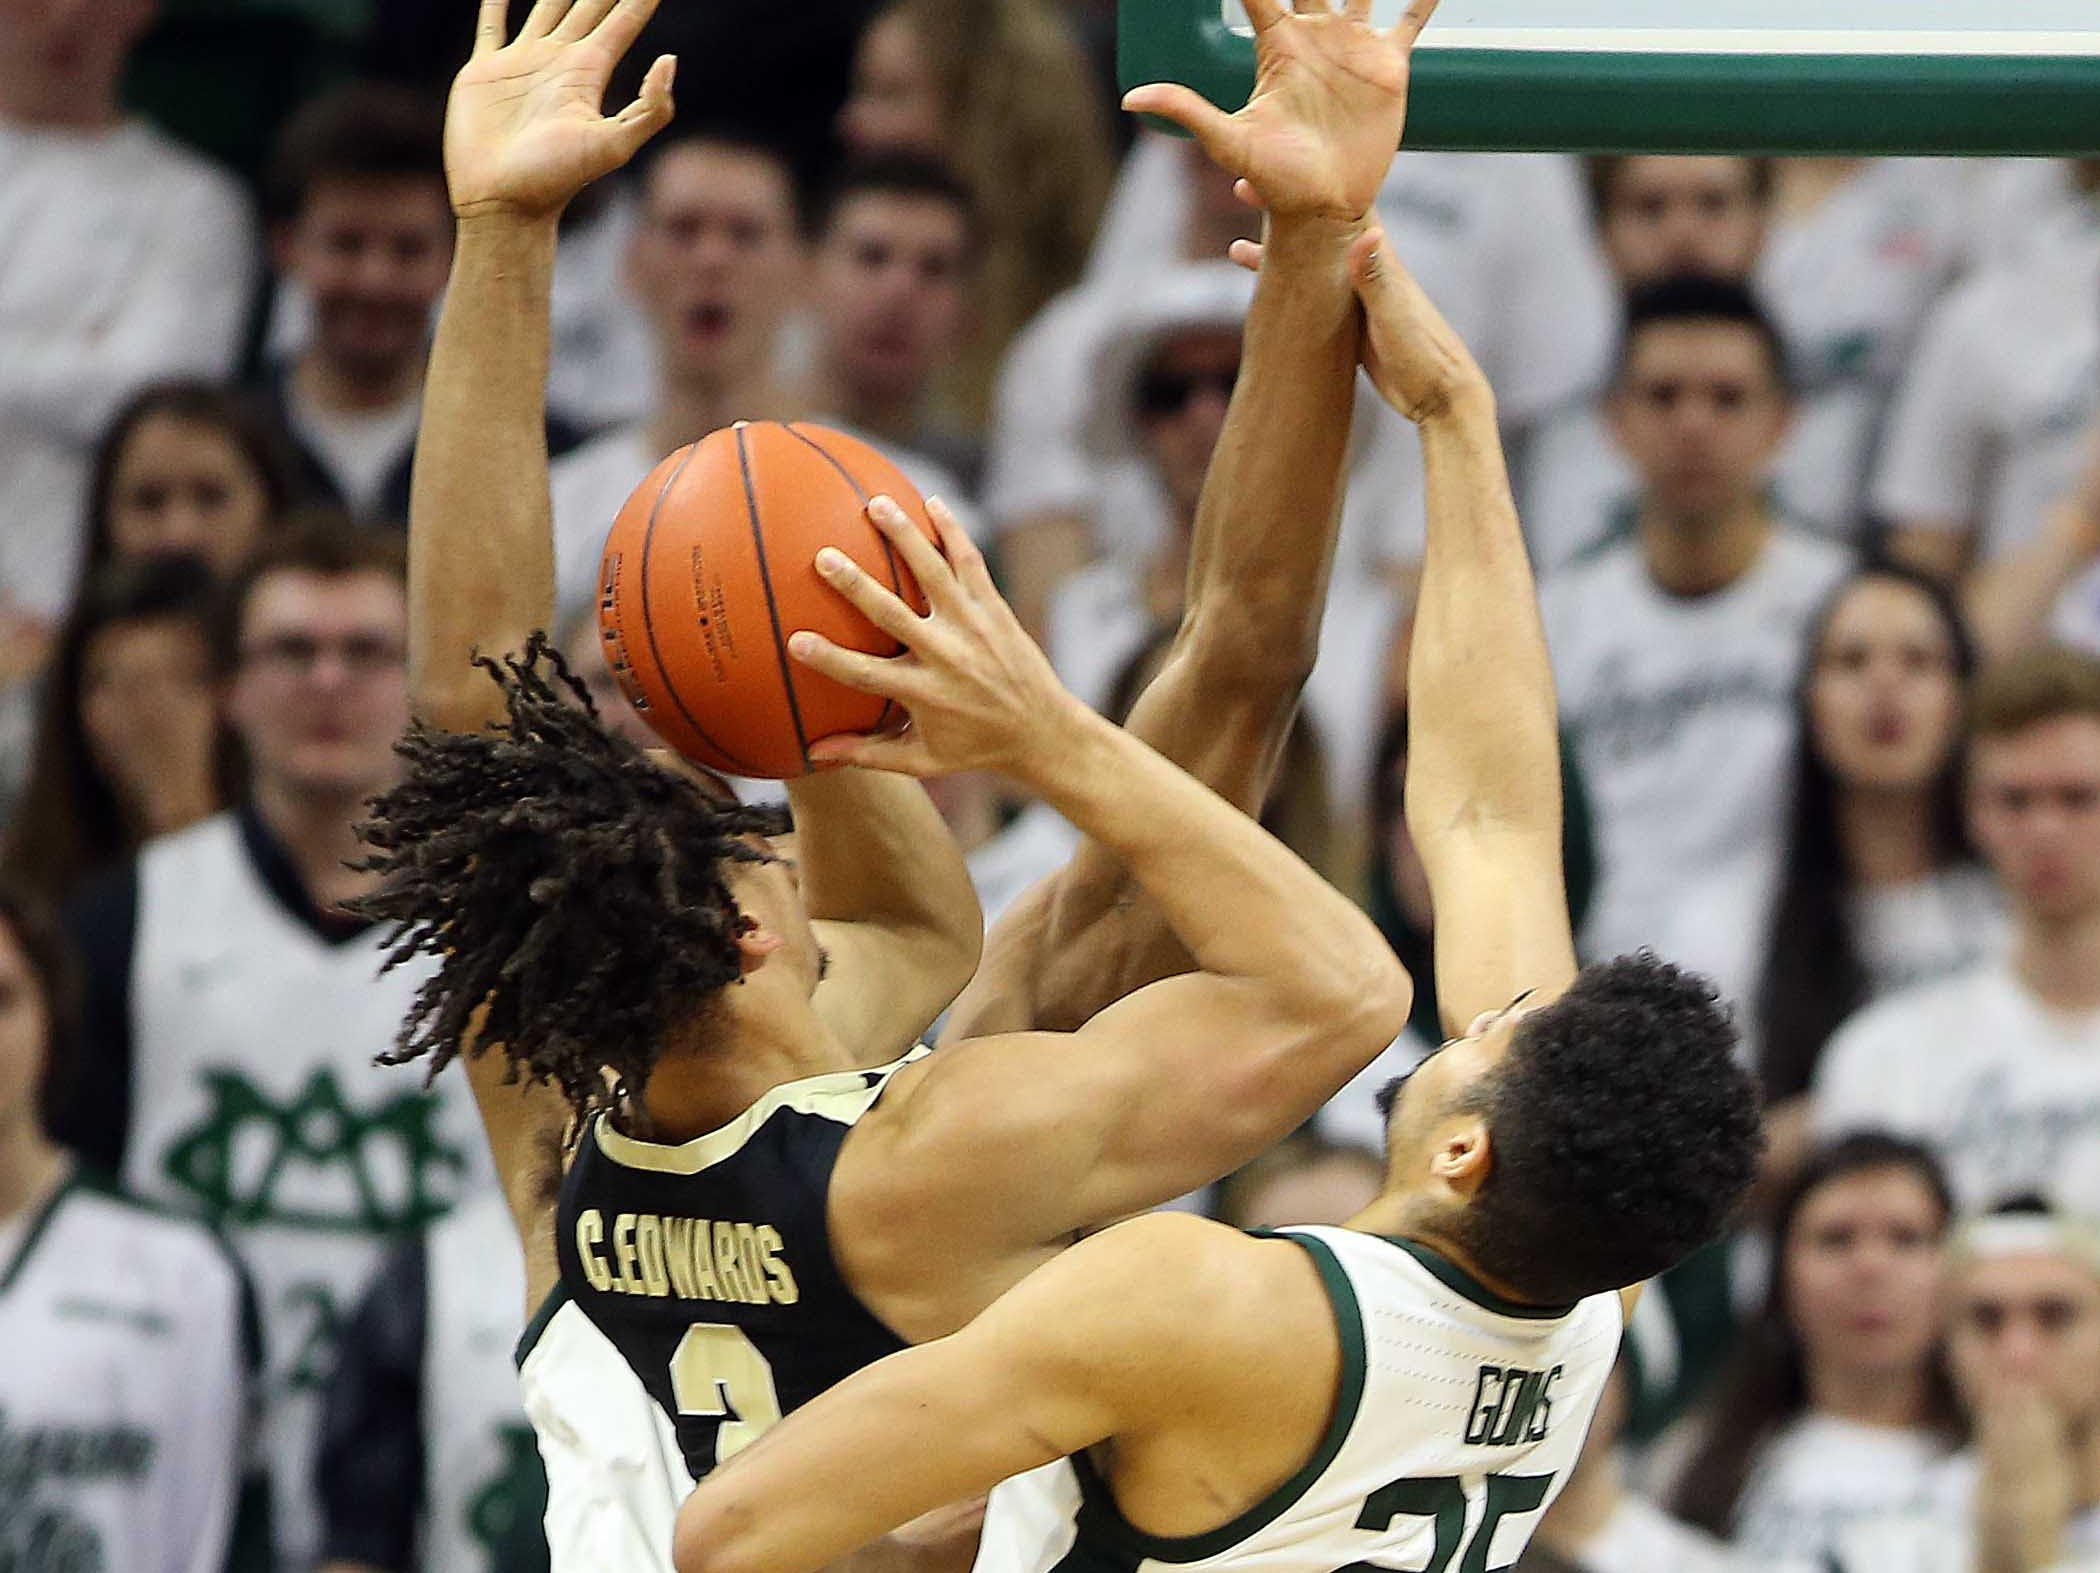 Jan 8, 2019; East Lansing, MI, USA; Purdue Boilermakers guard Carsen Edwards (3) is defended by Michigan State Spartans forward Kenny Goins (25) and Michigan State Spartans forward Xavier Tillman (23) during the second half of a game at the Breslin Center. Mandatory Credit: Mike Carter-USA TODAY Sports